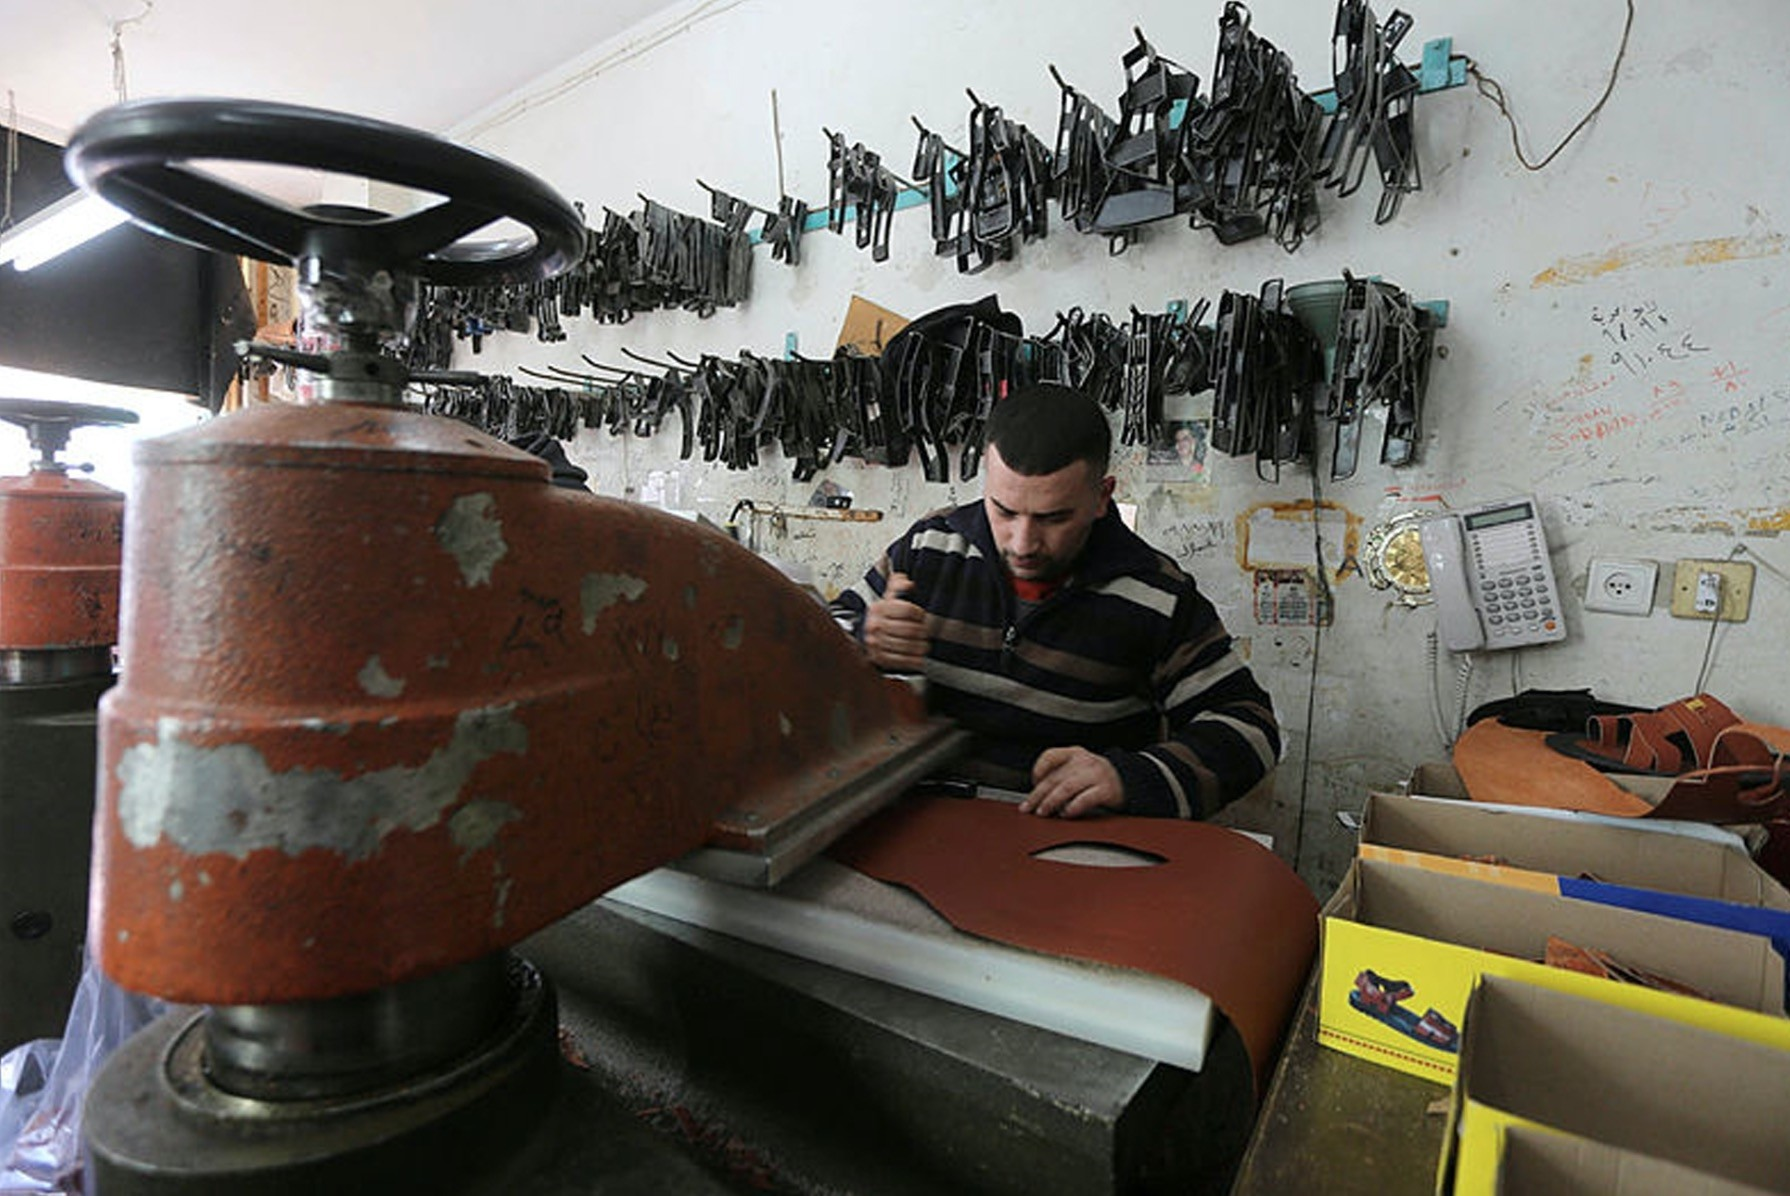 Leather craftsmen in El-Khalil, Palestine are trying to sustain their job, resisting against imported goods and Israeli embargo.